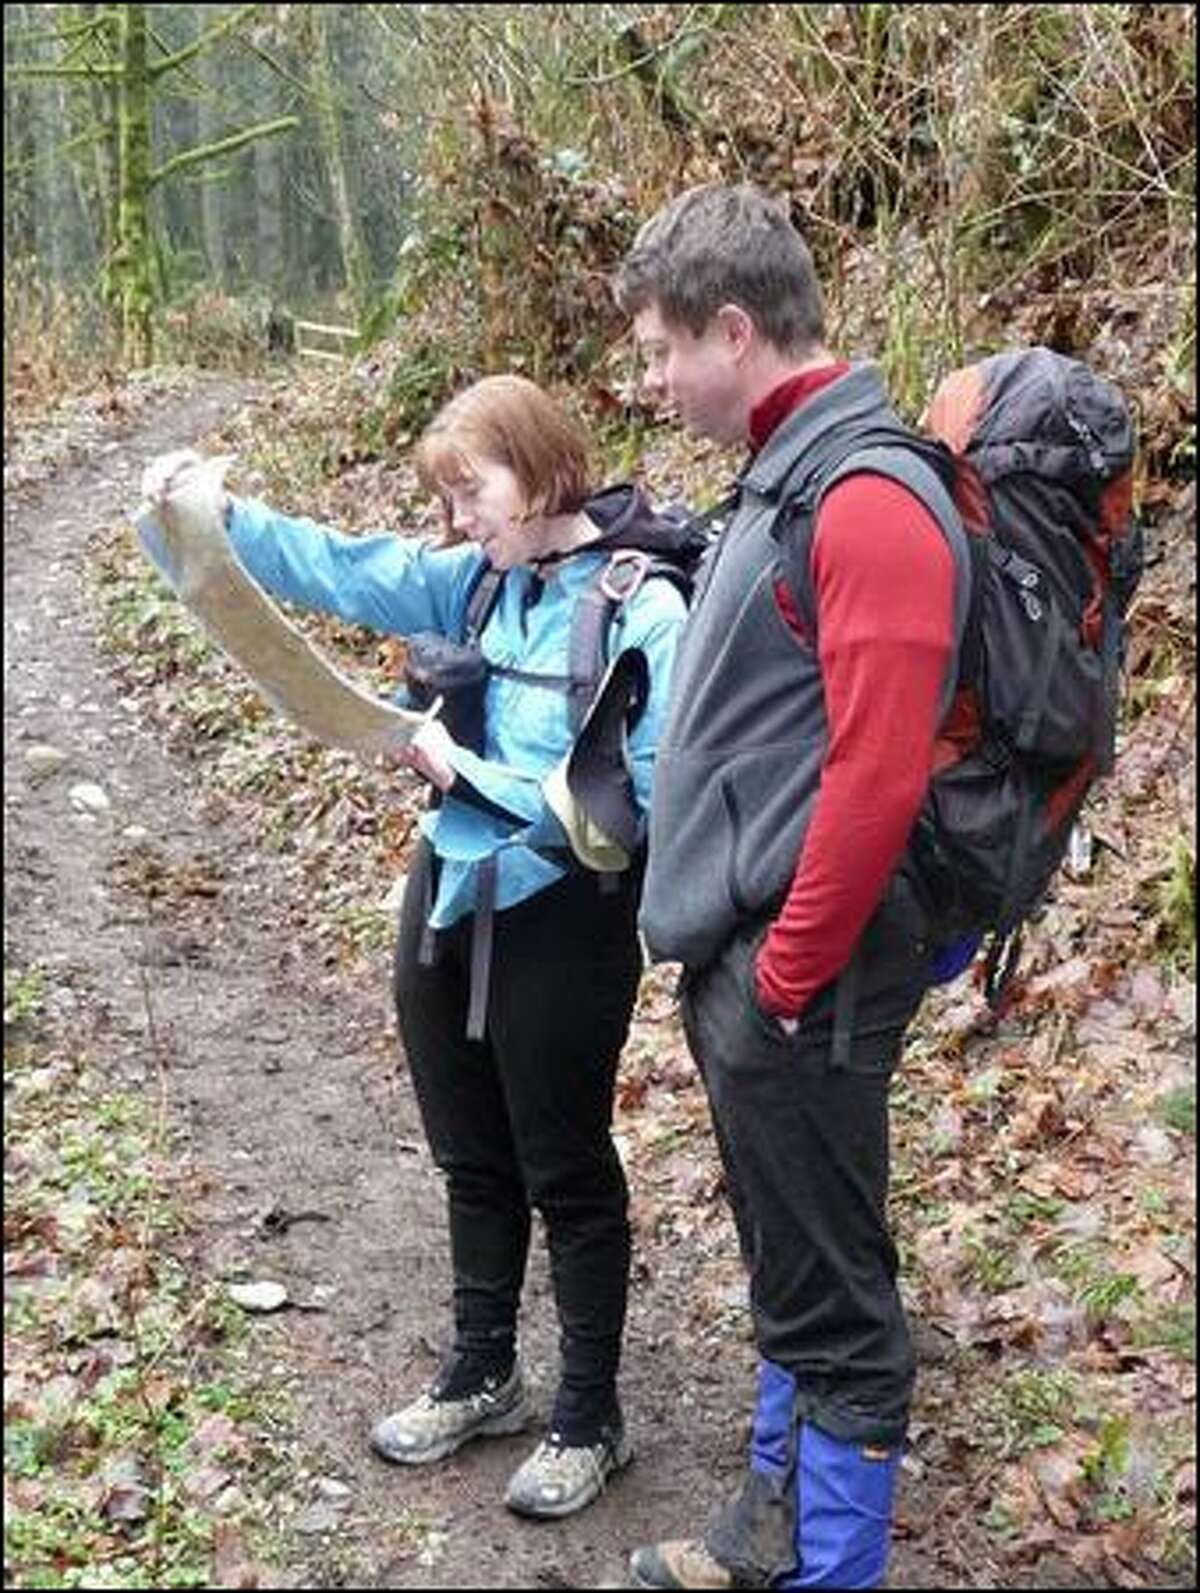 Snohomish residents Kelly and Matt Cleman ponder the map on the confusing Equestrian Loop on Squak Mountain, which seems to be a work in progress.